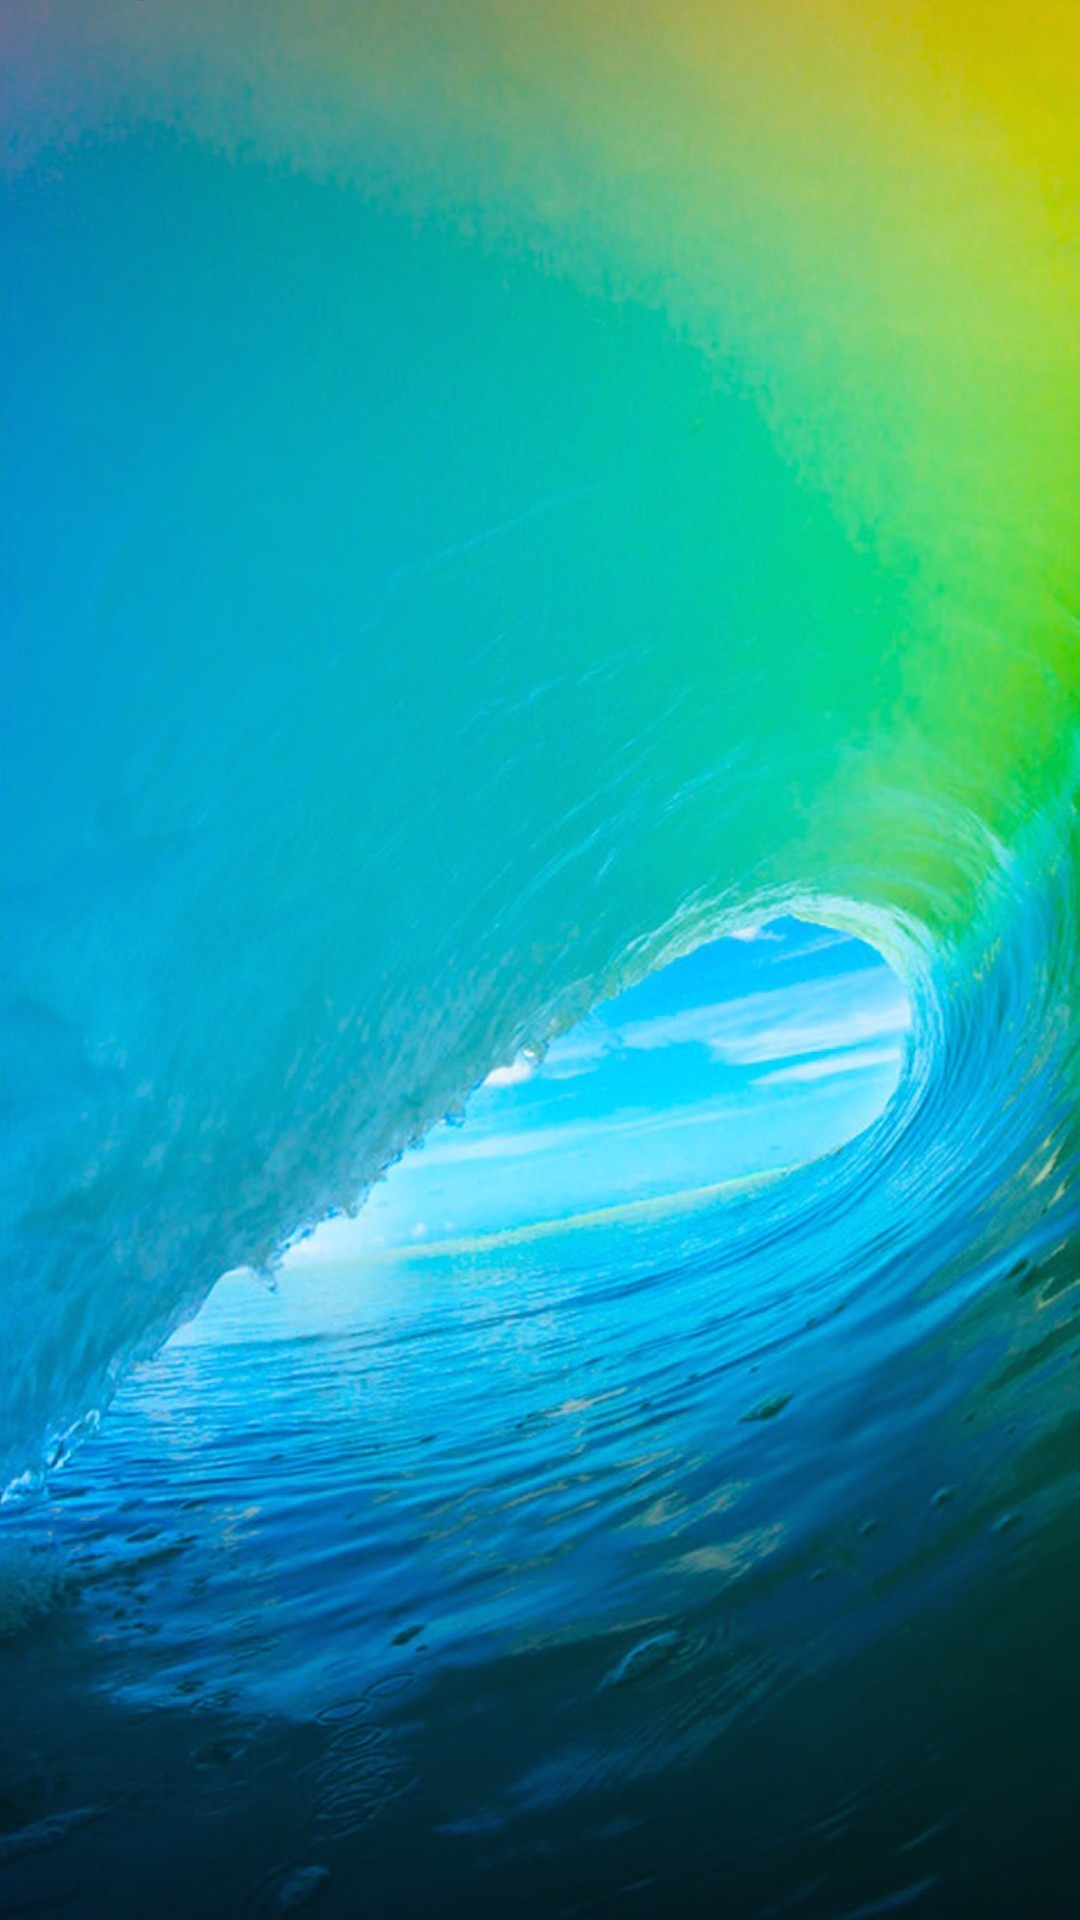 1080x1920 iOS 9 Colorful Surf Wave iPhone 6+ HD Wallpaper